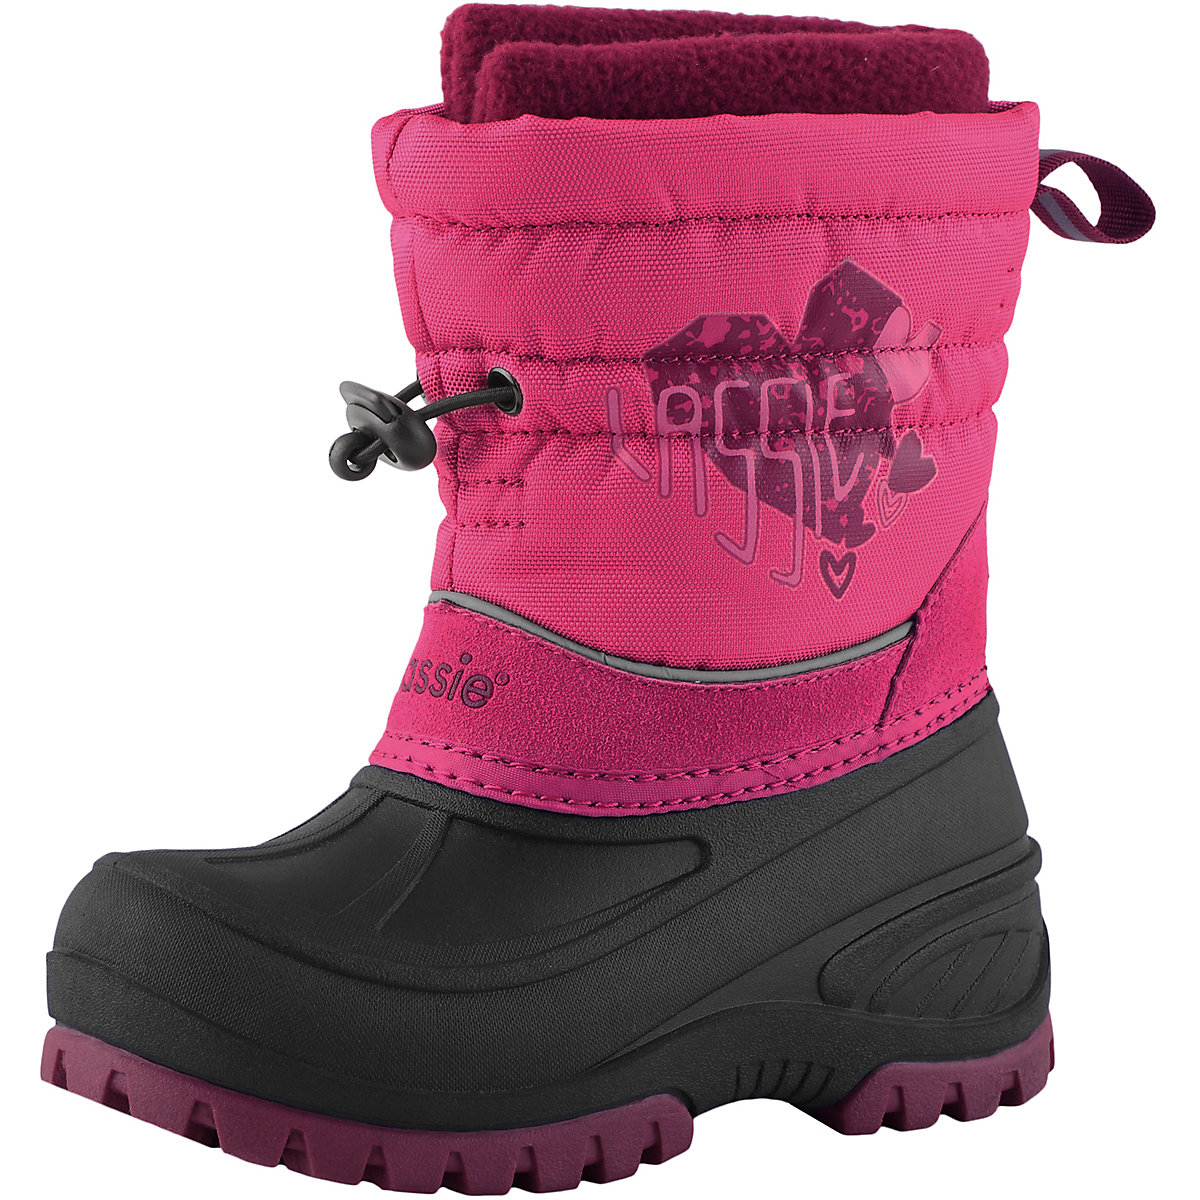 Boots LASSIE For Girls 8622467 Valenki Uggi Winter Baby Shoes Kids MTpromo